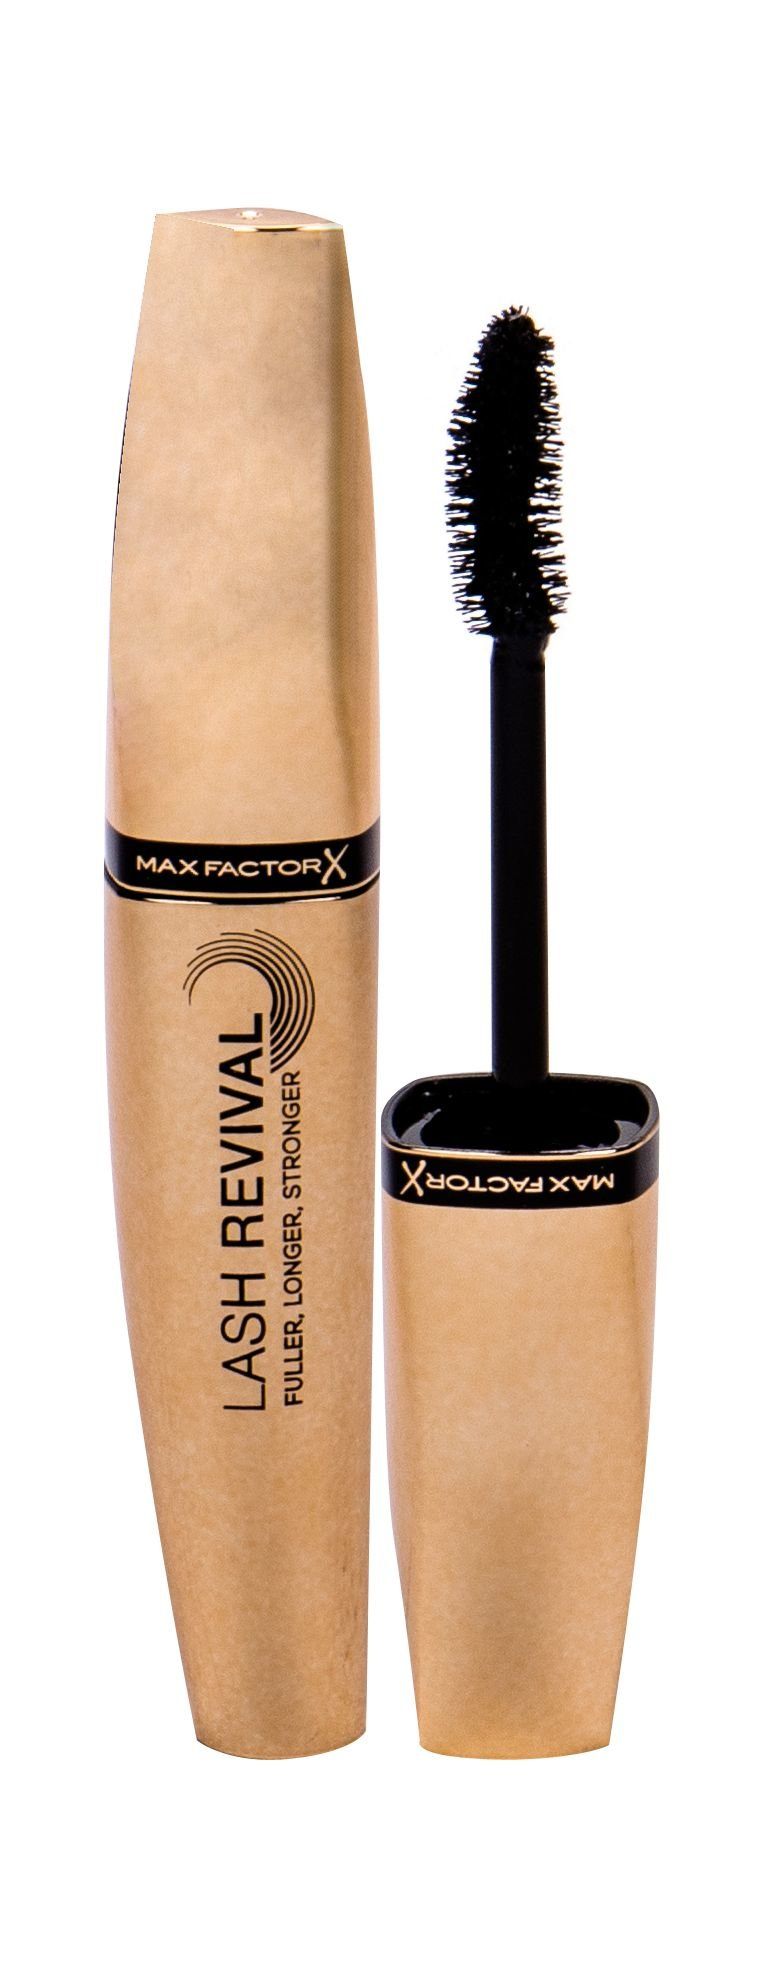 Max Factor Lash Revival Mascara 11ml 001 Black